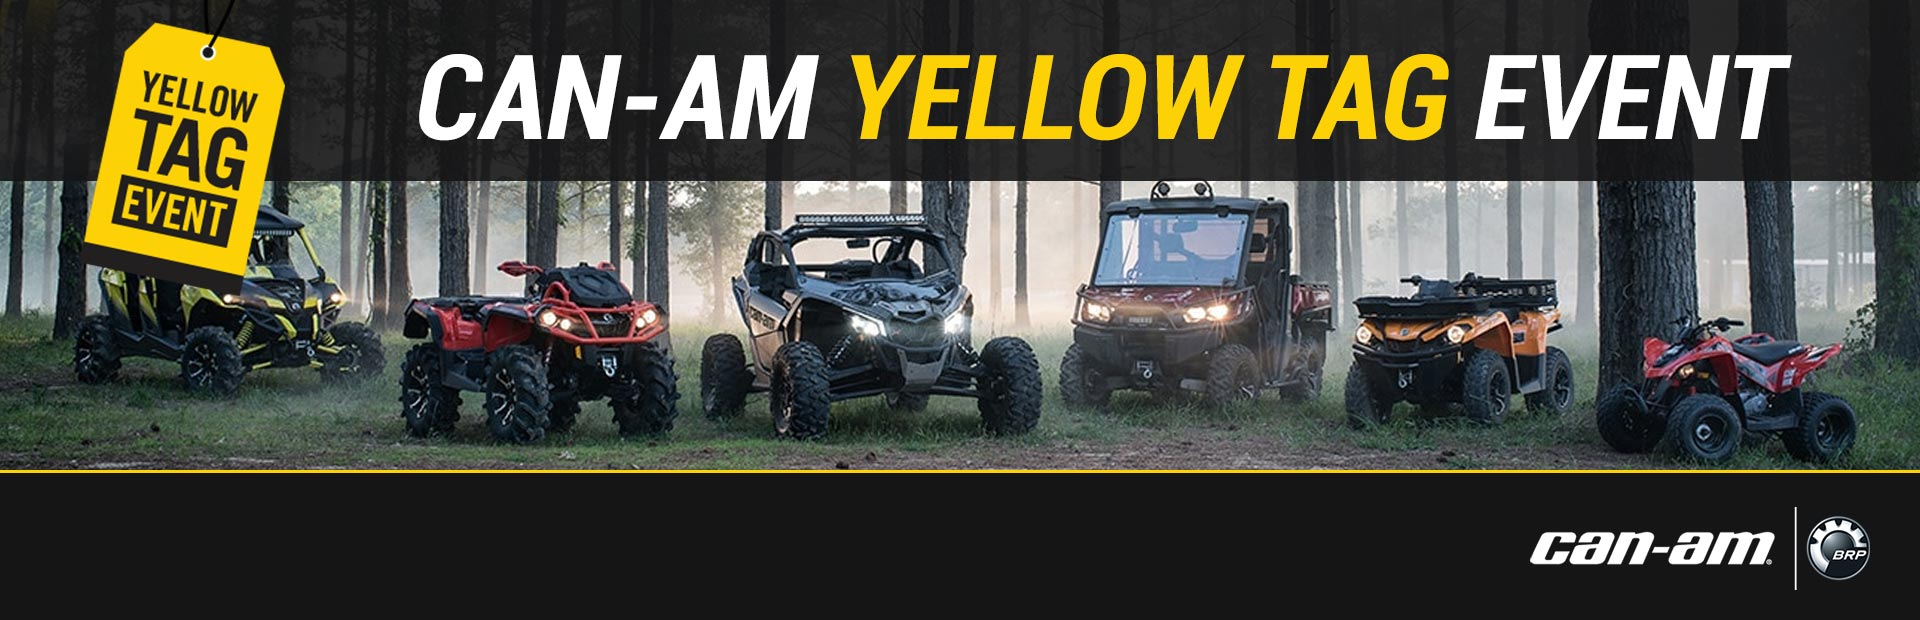 Can-Am: Can-Am Yellow Tag Event